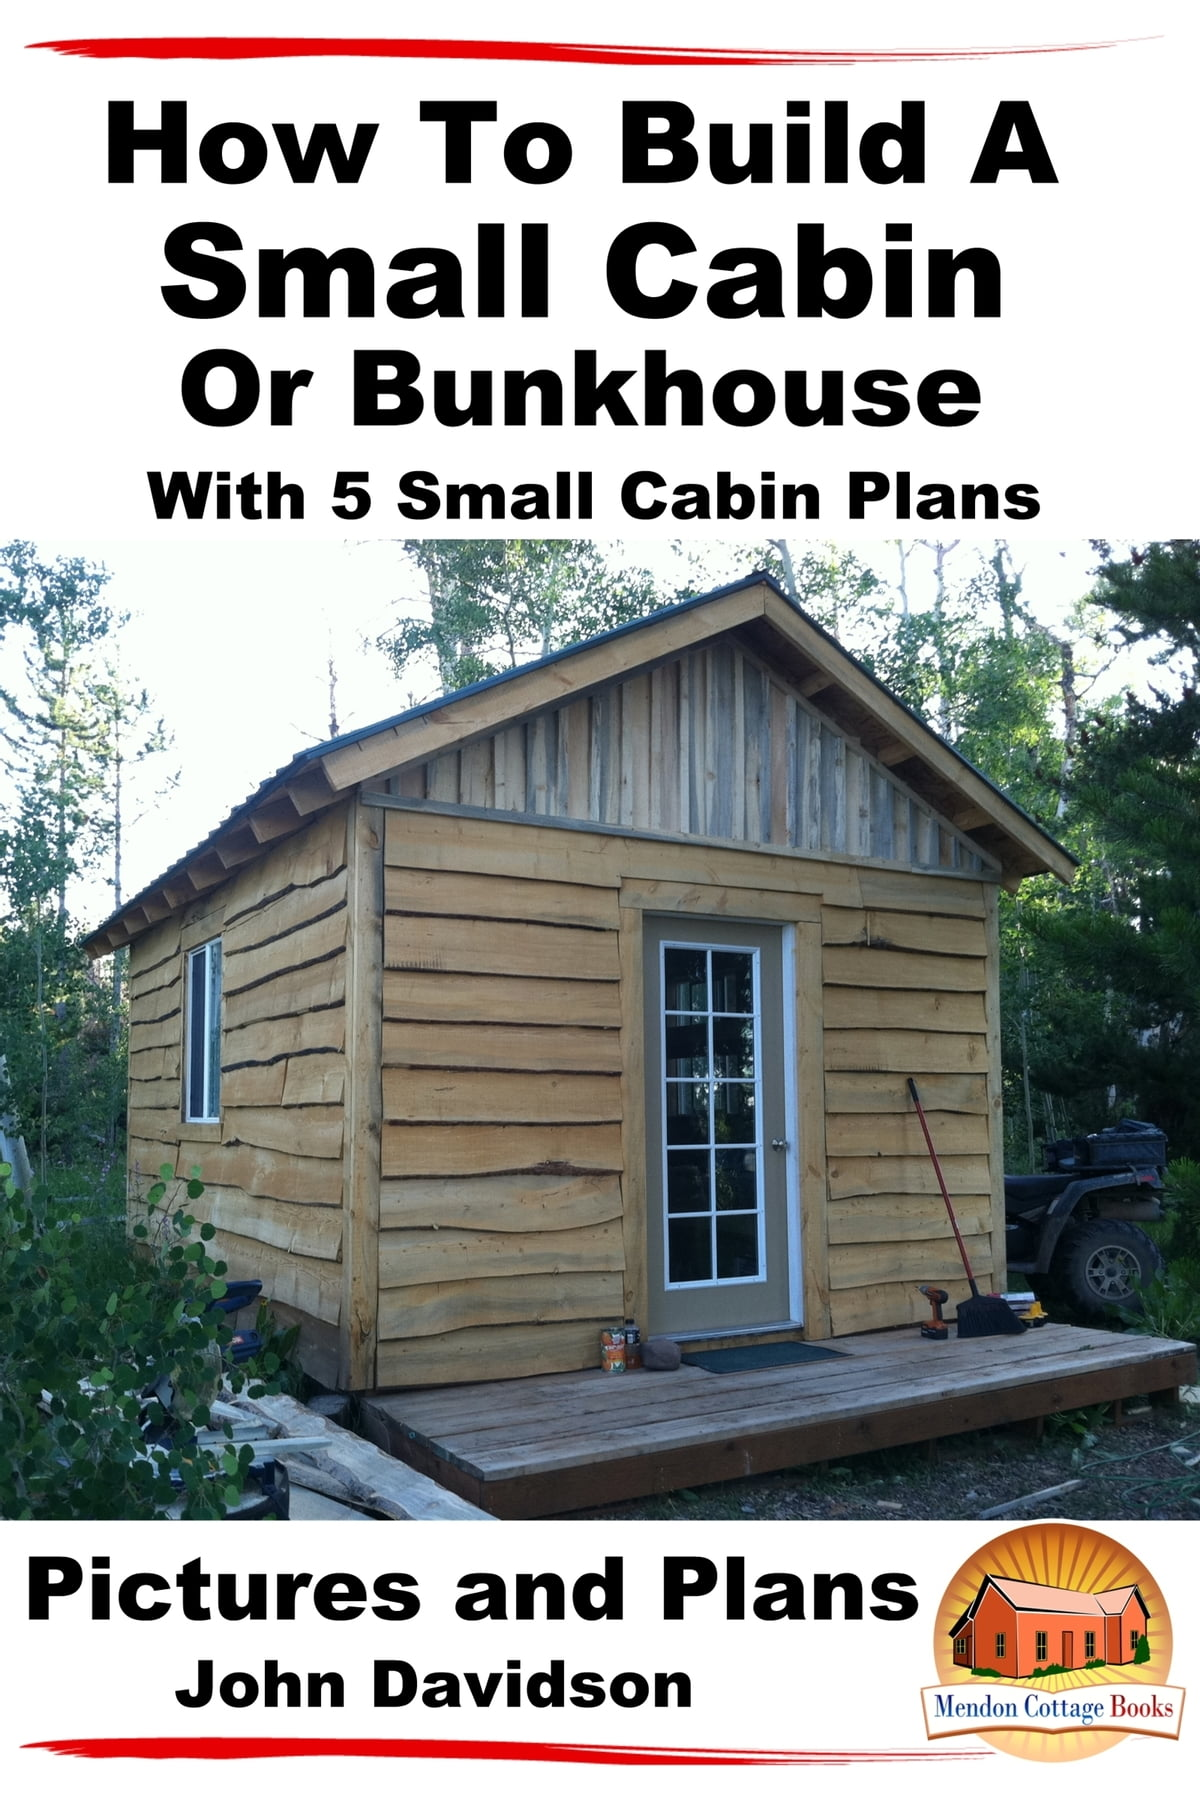 How To Build A Small Cabin Or Bunkhouse With 5 Small Cabin Plans ...